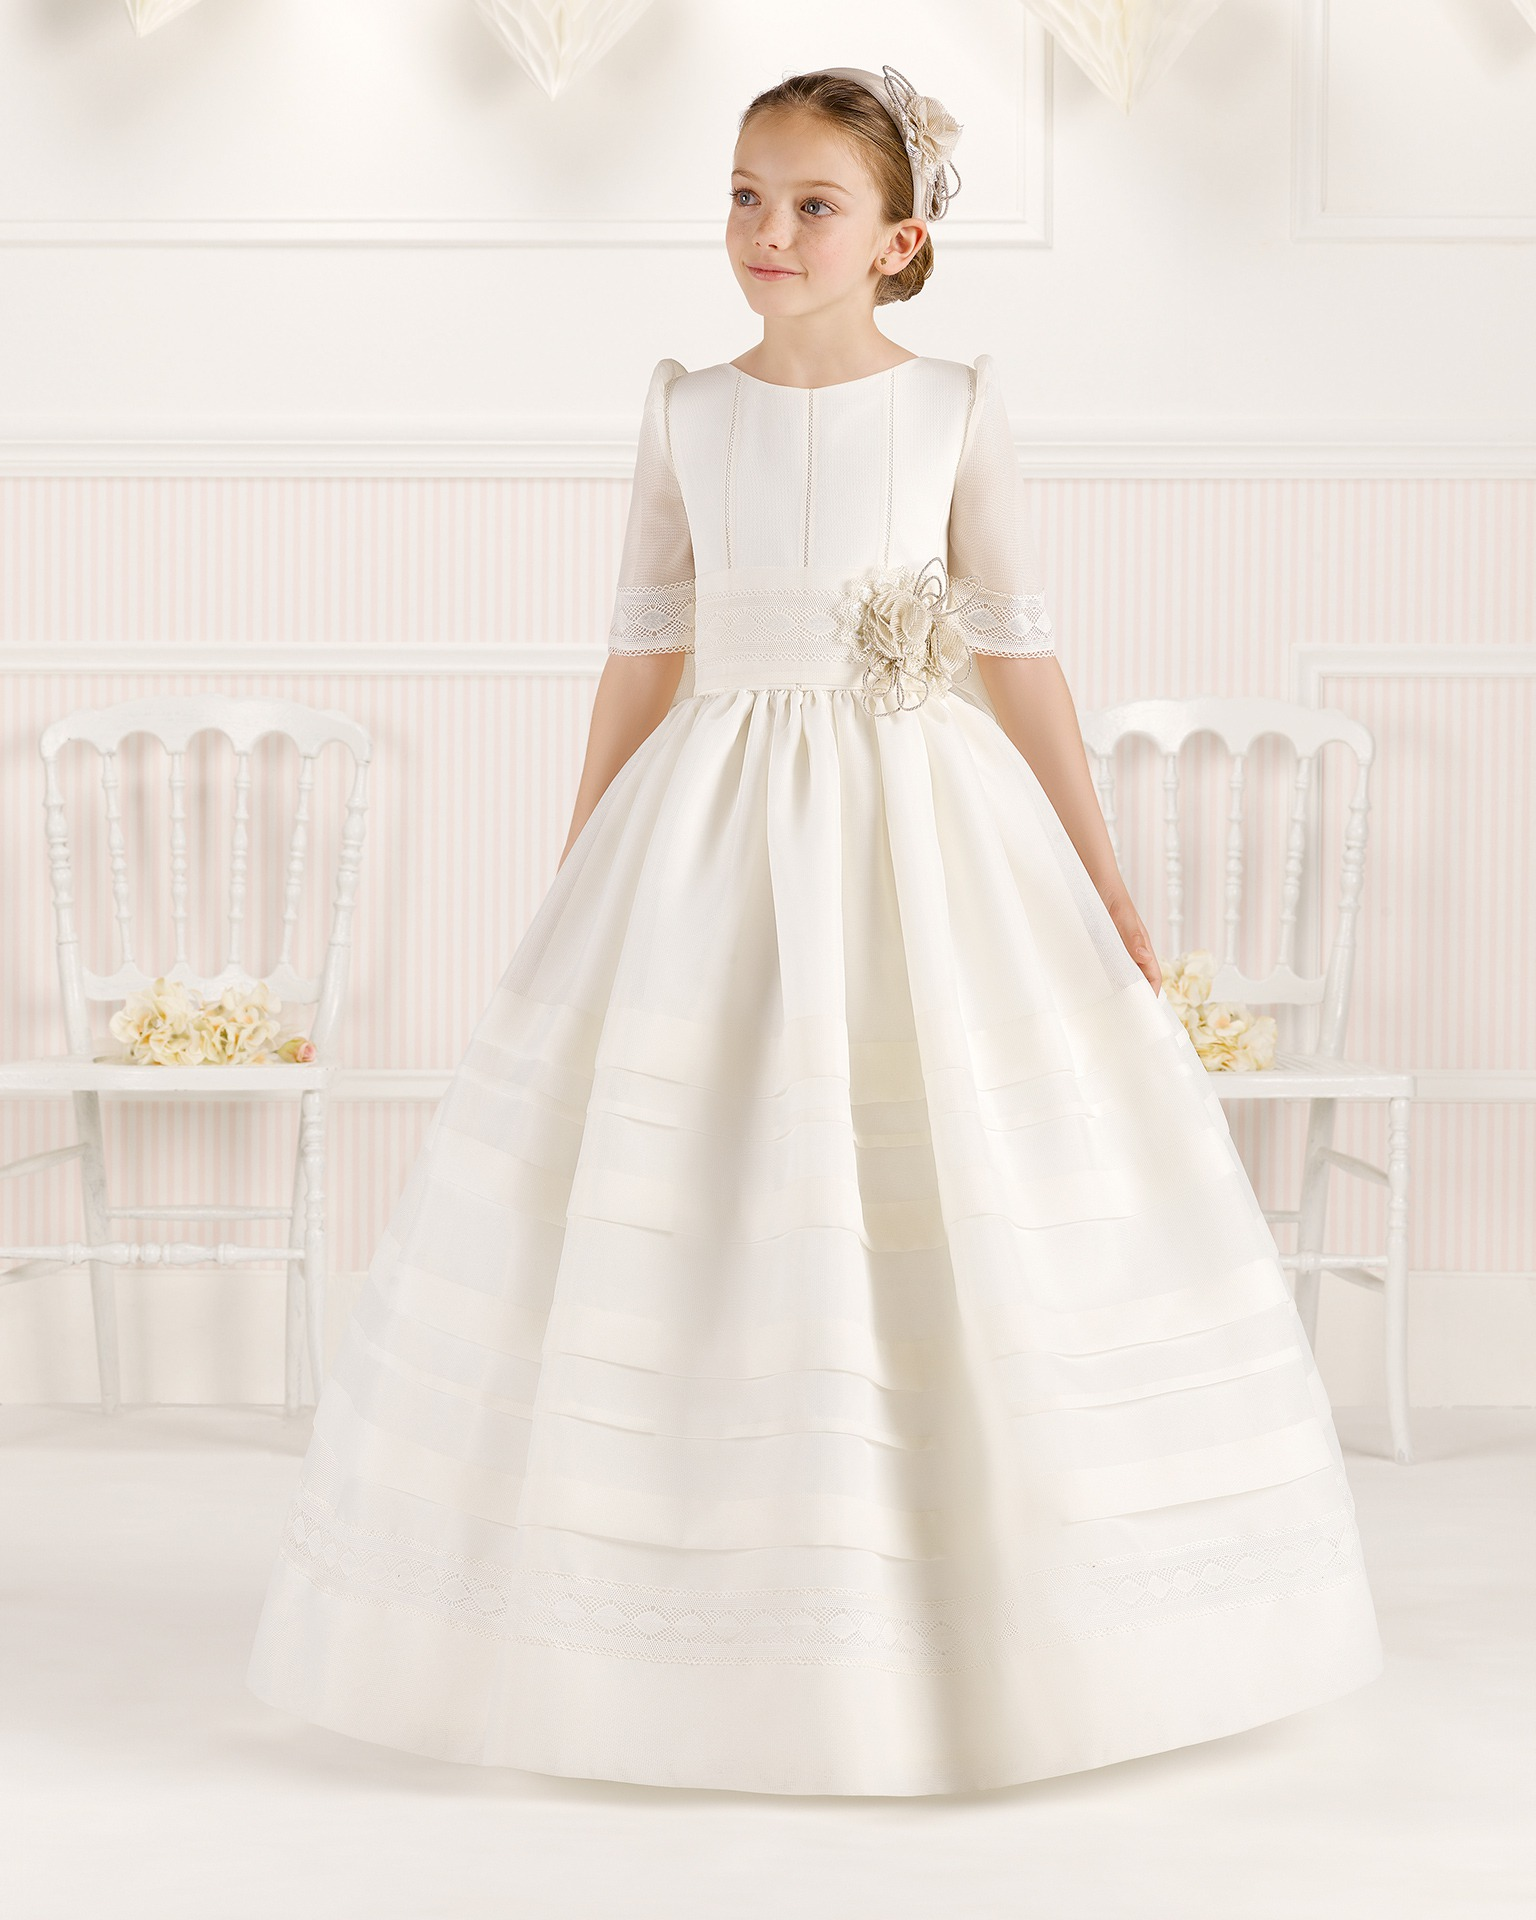 9O110 ballgown-style First Communion dress